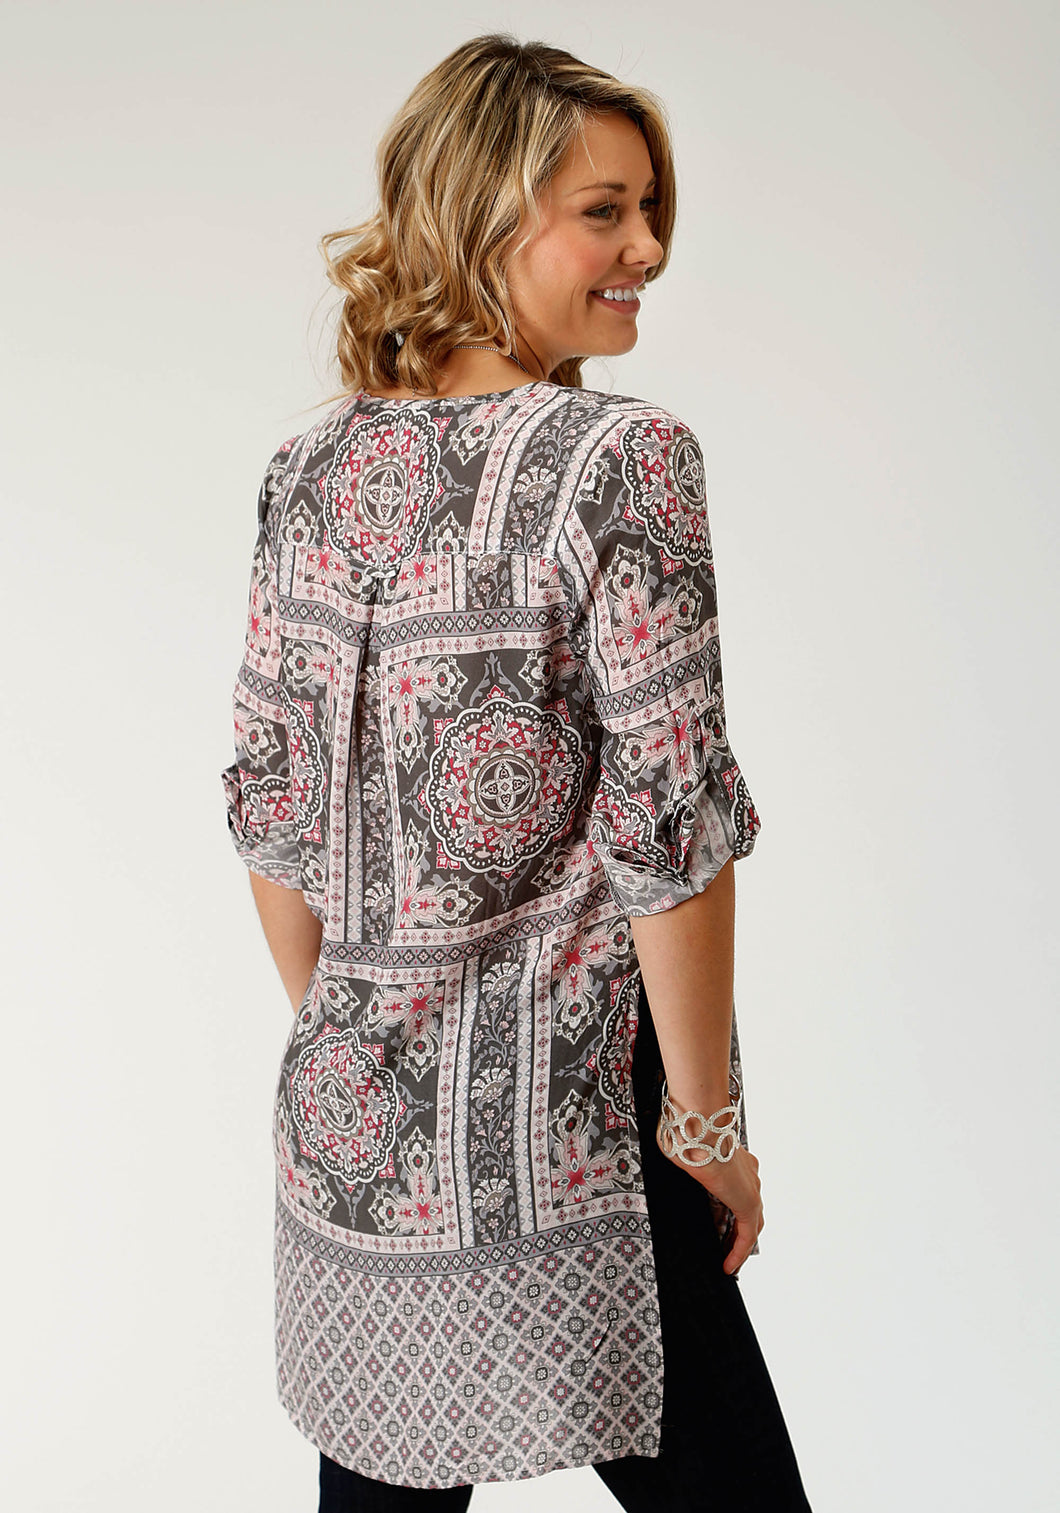 Studio West- Rosy Outlook Swest Womens Long Sleeve Shirt 1574 Scarf Print Tunic